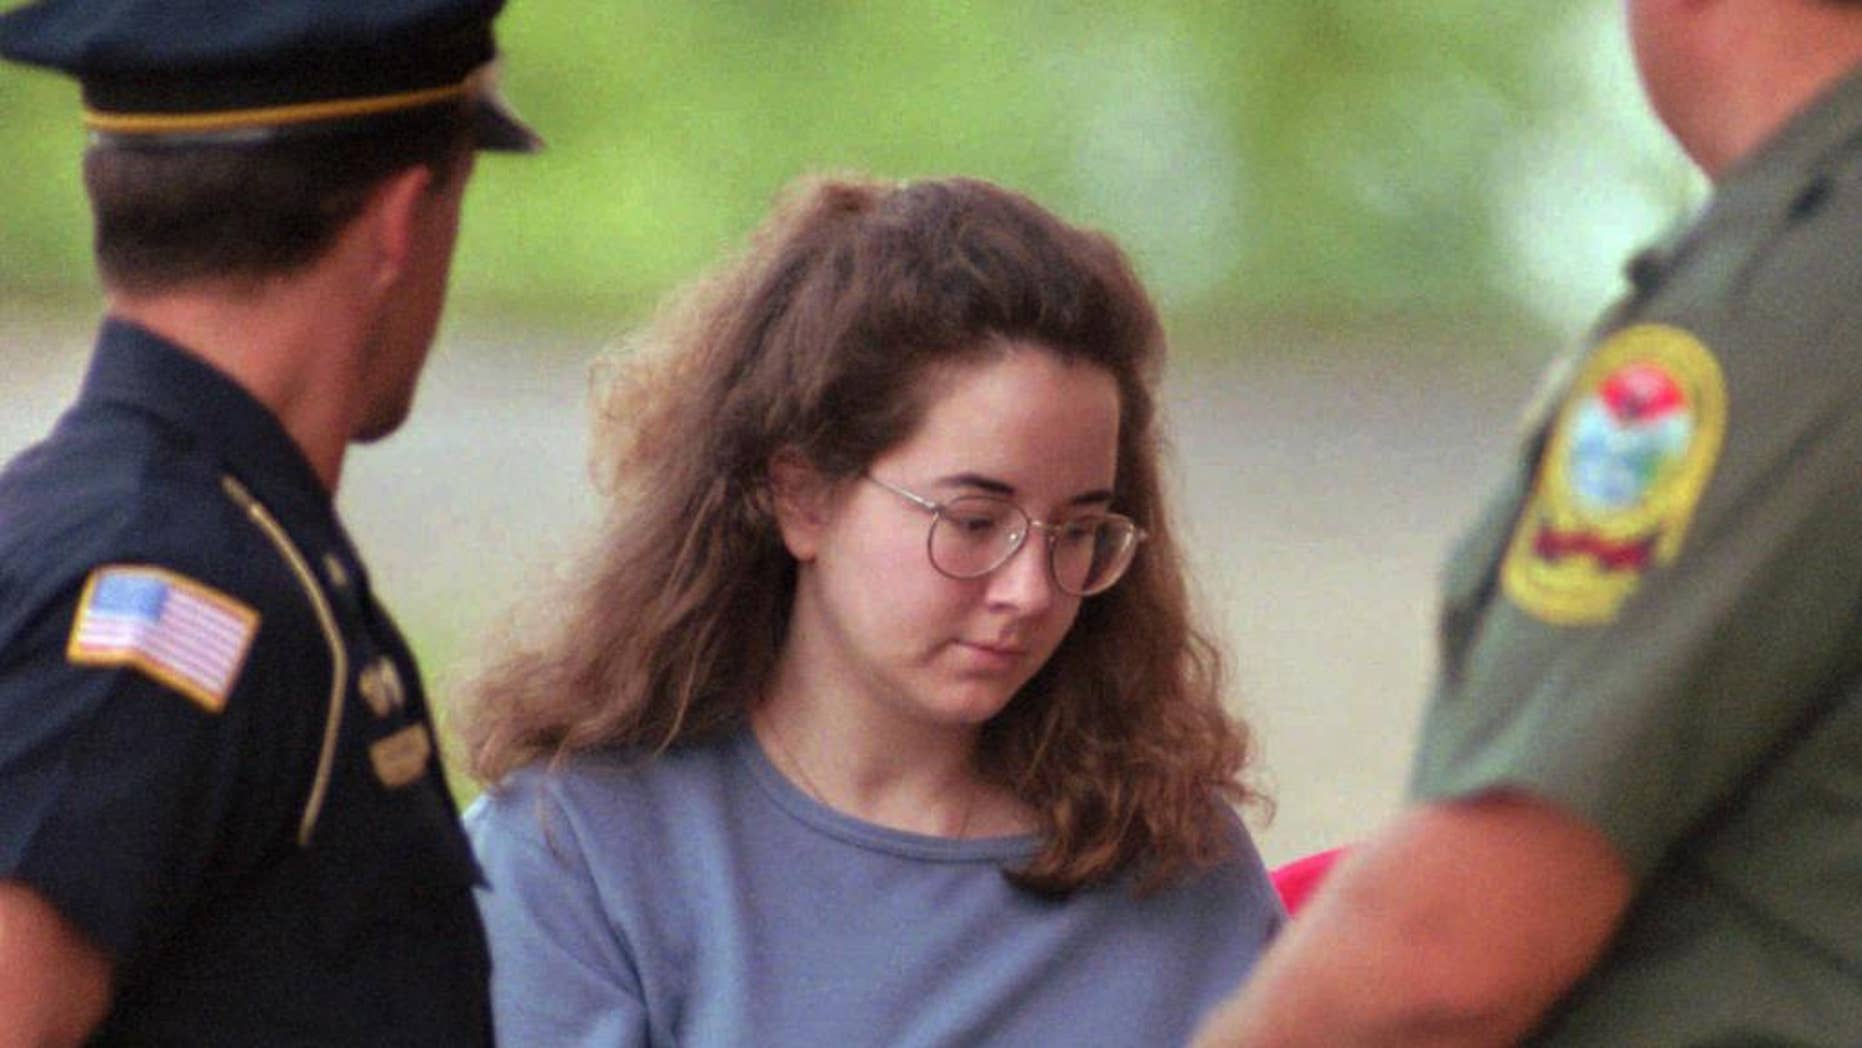 FILE - In this July 27, 1995 file photo, Susan Smith is escorted into the Union County Courthouse in Union, S.C. Smith sentenced to life in prison for killing her two young sons never planned to kill them and instead intended to end her own life, according to a letter she wrote to The State, a Columbia, S.C., newspaper, reported Wednesday, July 22, 2015.  (AP Photo/Lou Krasky, File)